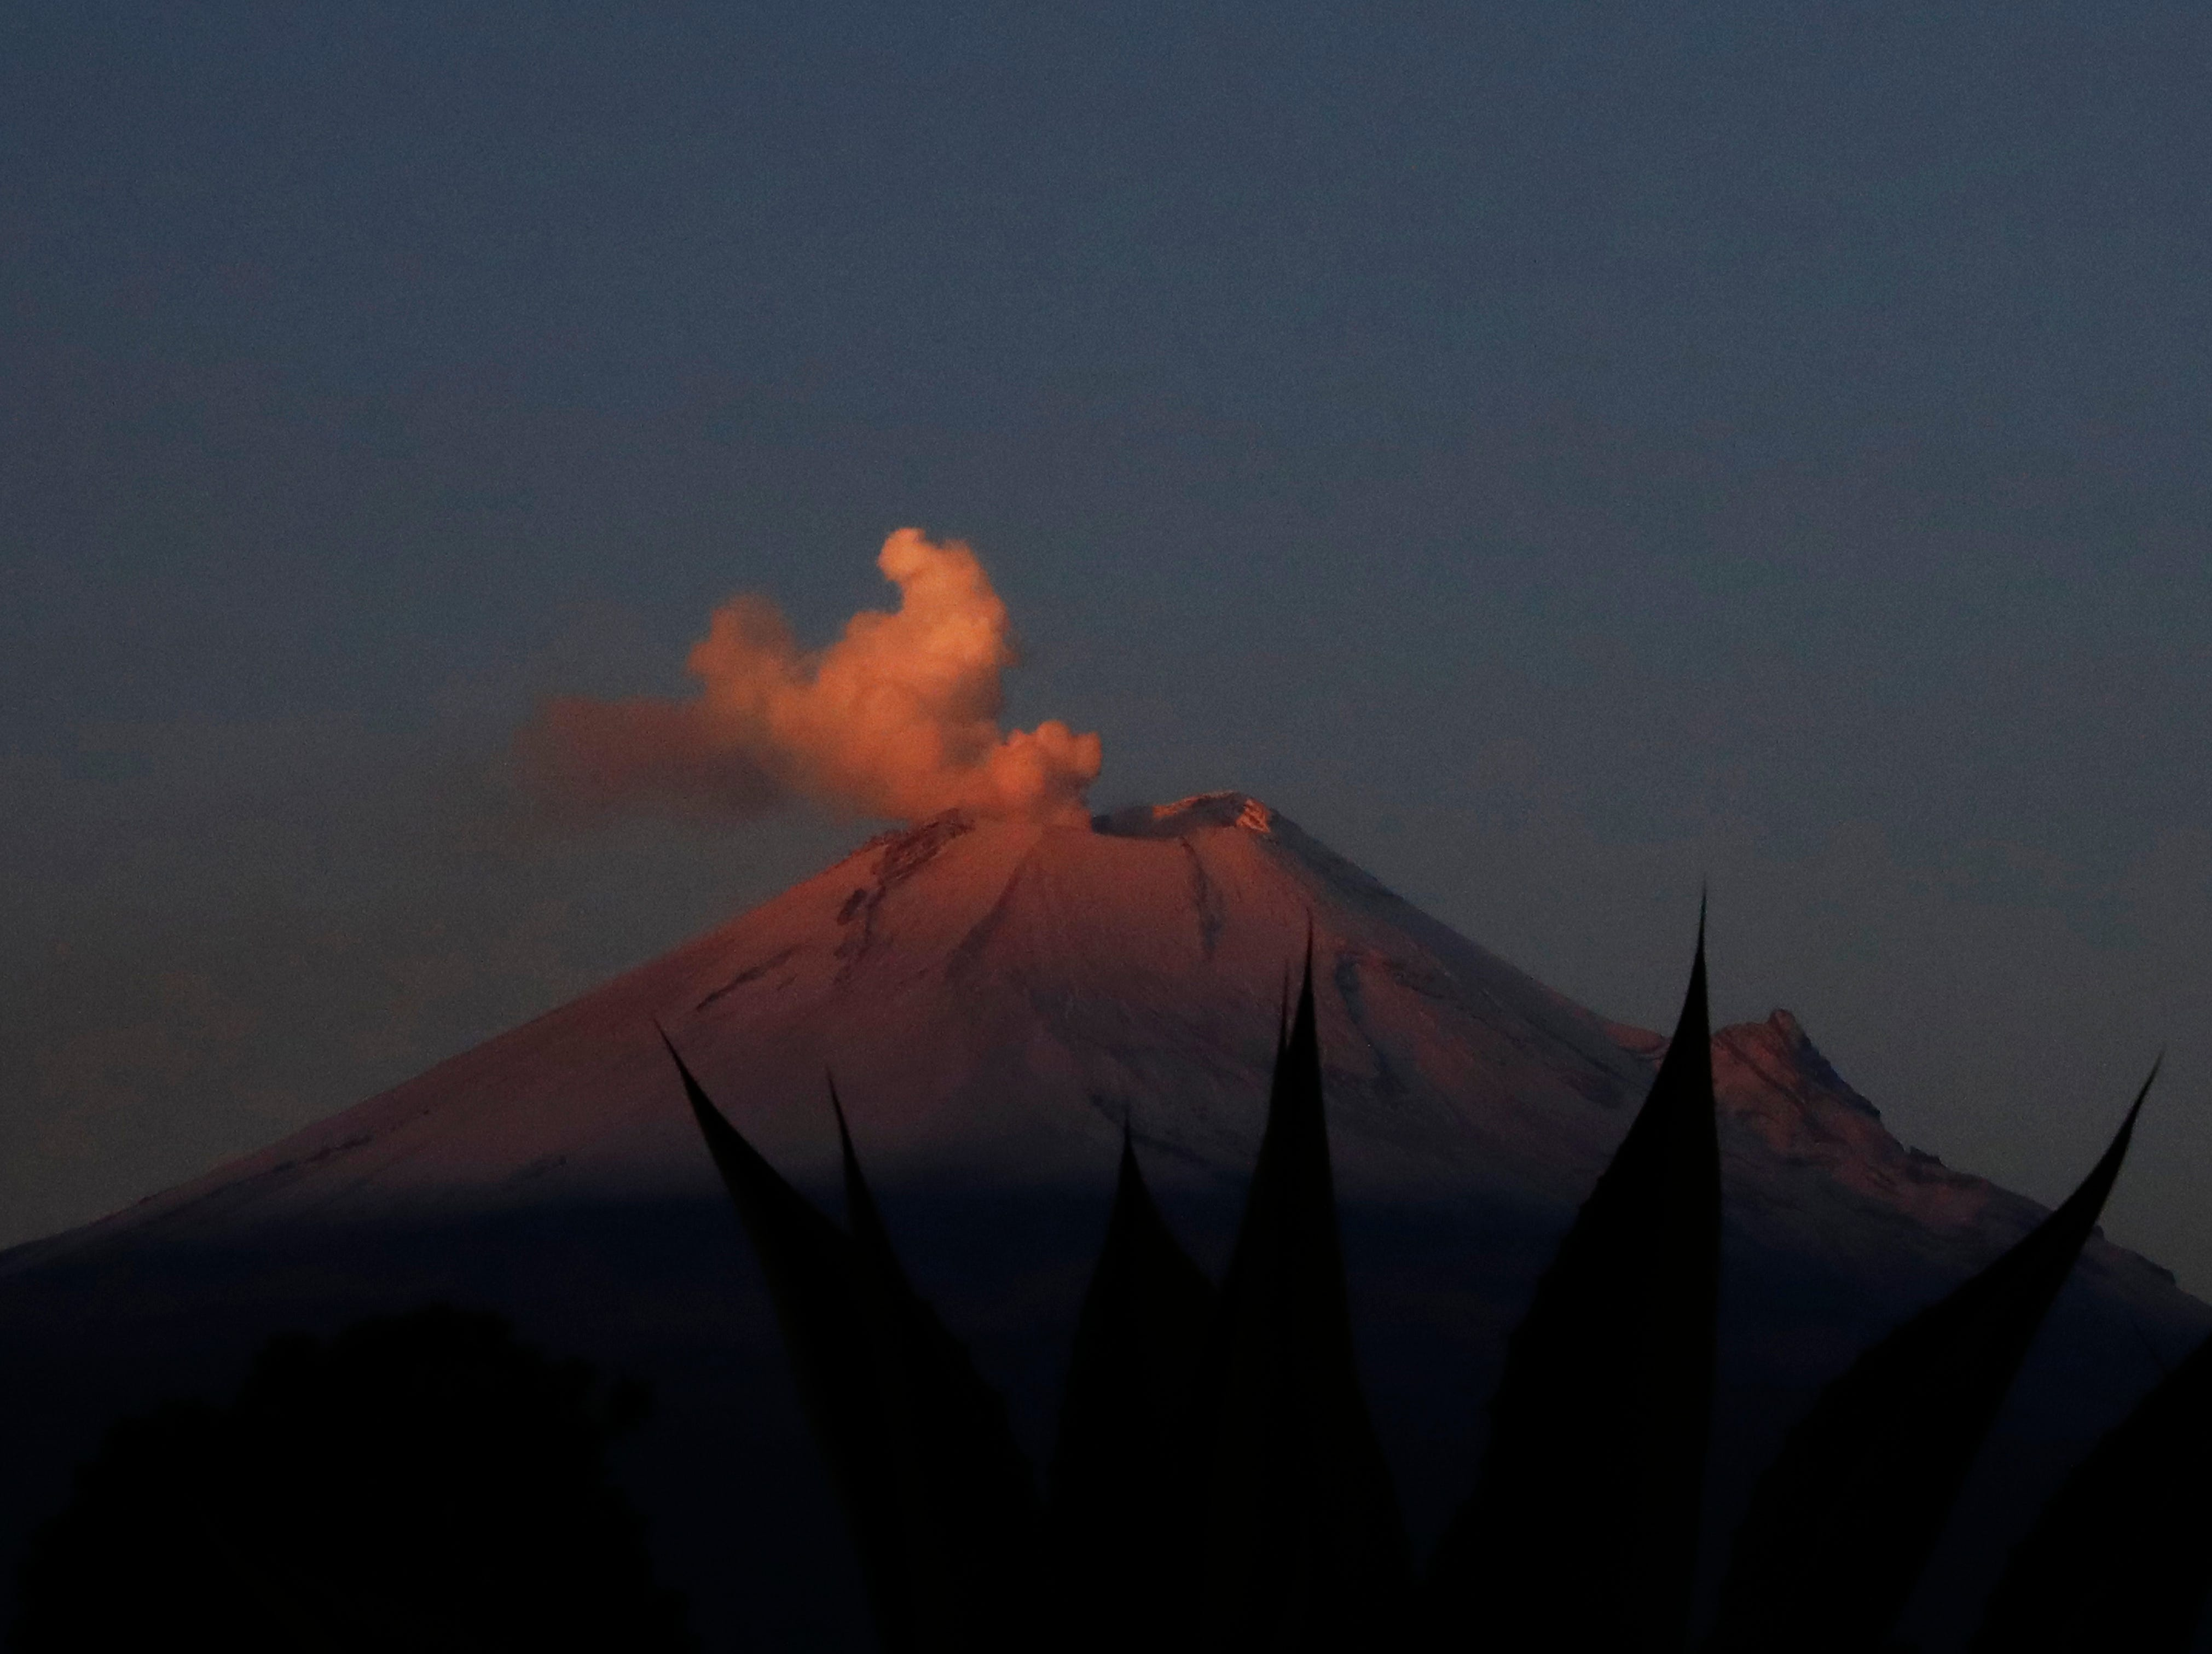 """In this Thursday, May 2, 2019 photo, the Popocatepetl volcano releases a plume of ash as seen from the flanks of the Iztacchuatl volcano, near Santiago Xalitzintla, Mexico. Veronica Agustin says the community has gotten used to living with Don Goyo, a nickname for Popocatepetl. When Don Goyo gets angry, the ground vibrates, doors and windows shake -- she compares the sound to that of beans cooking in boiling water. """"The scare passes,"""" said Agustin."""